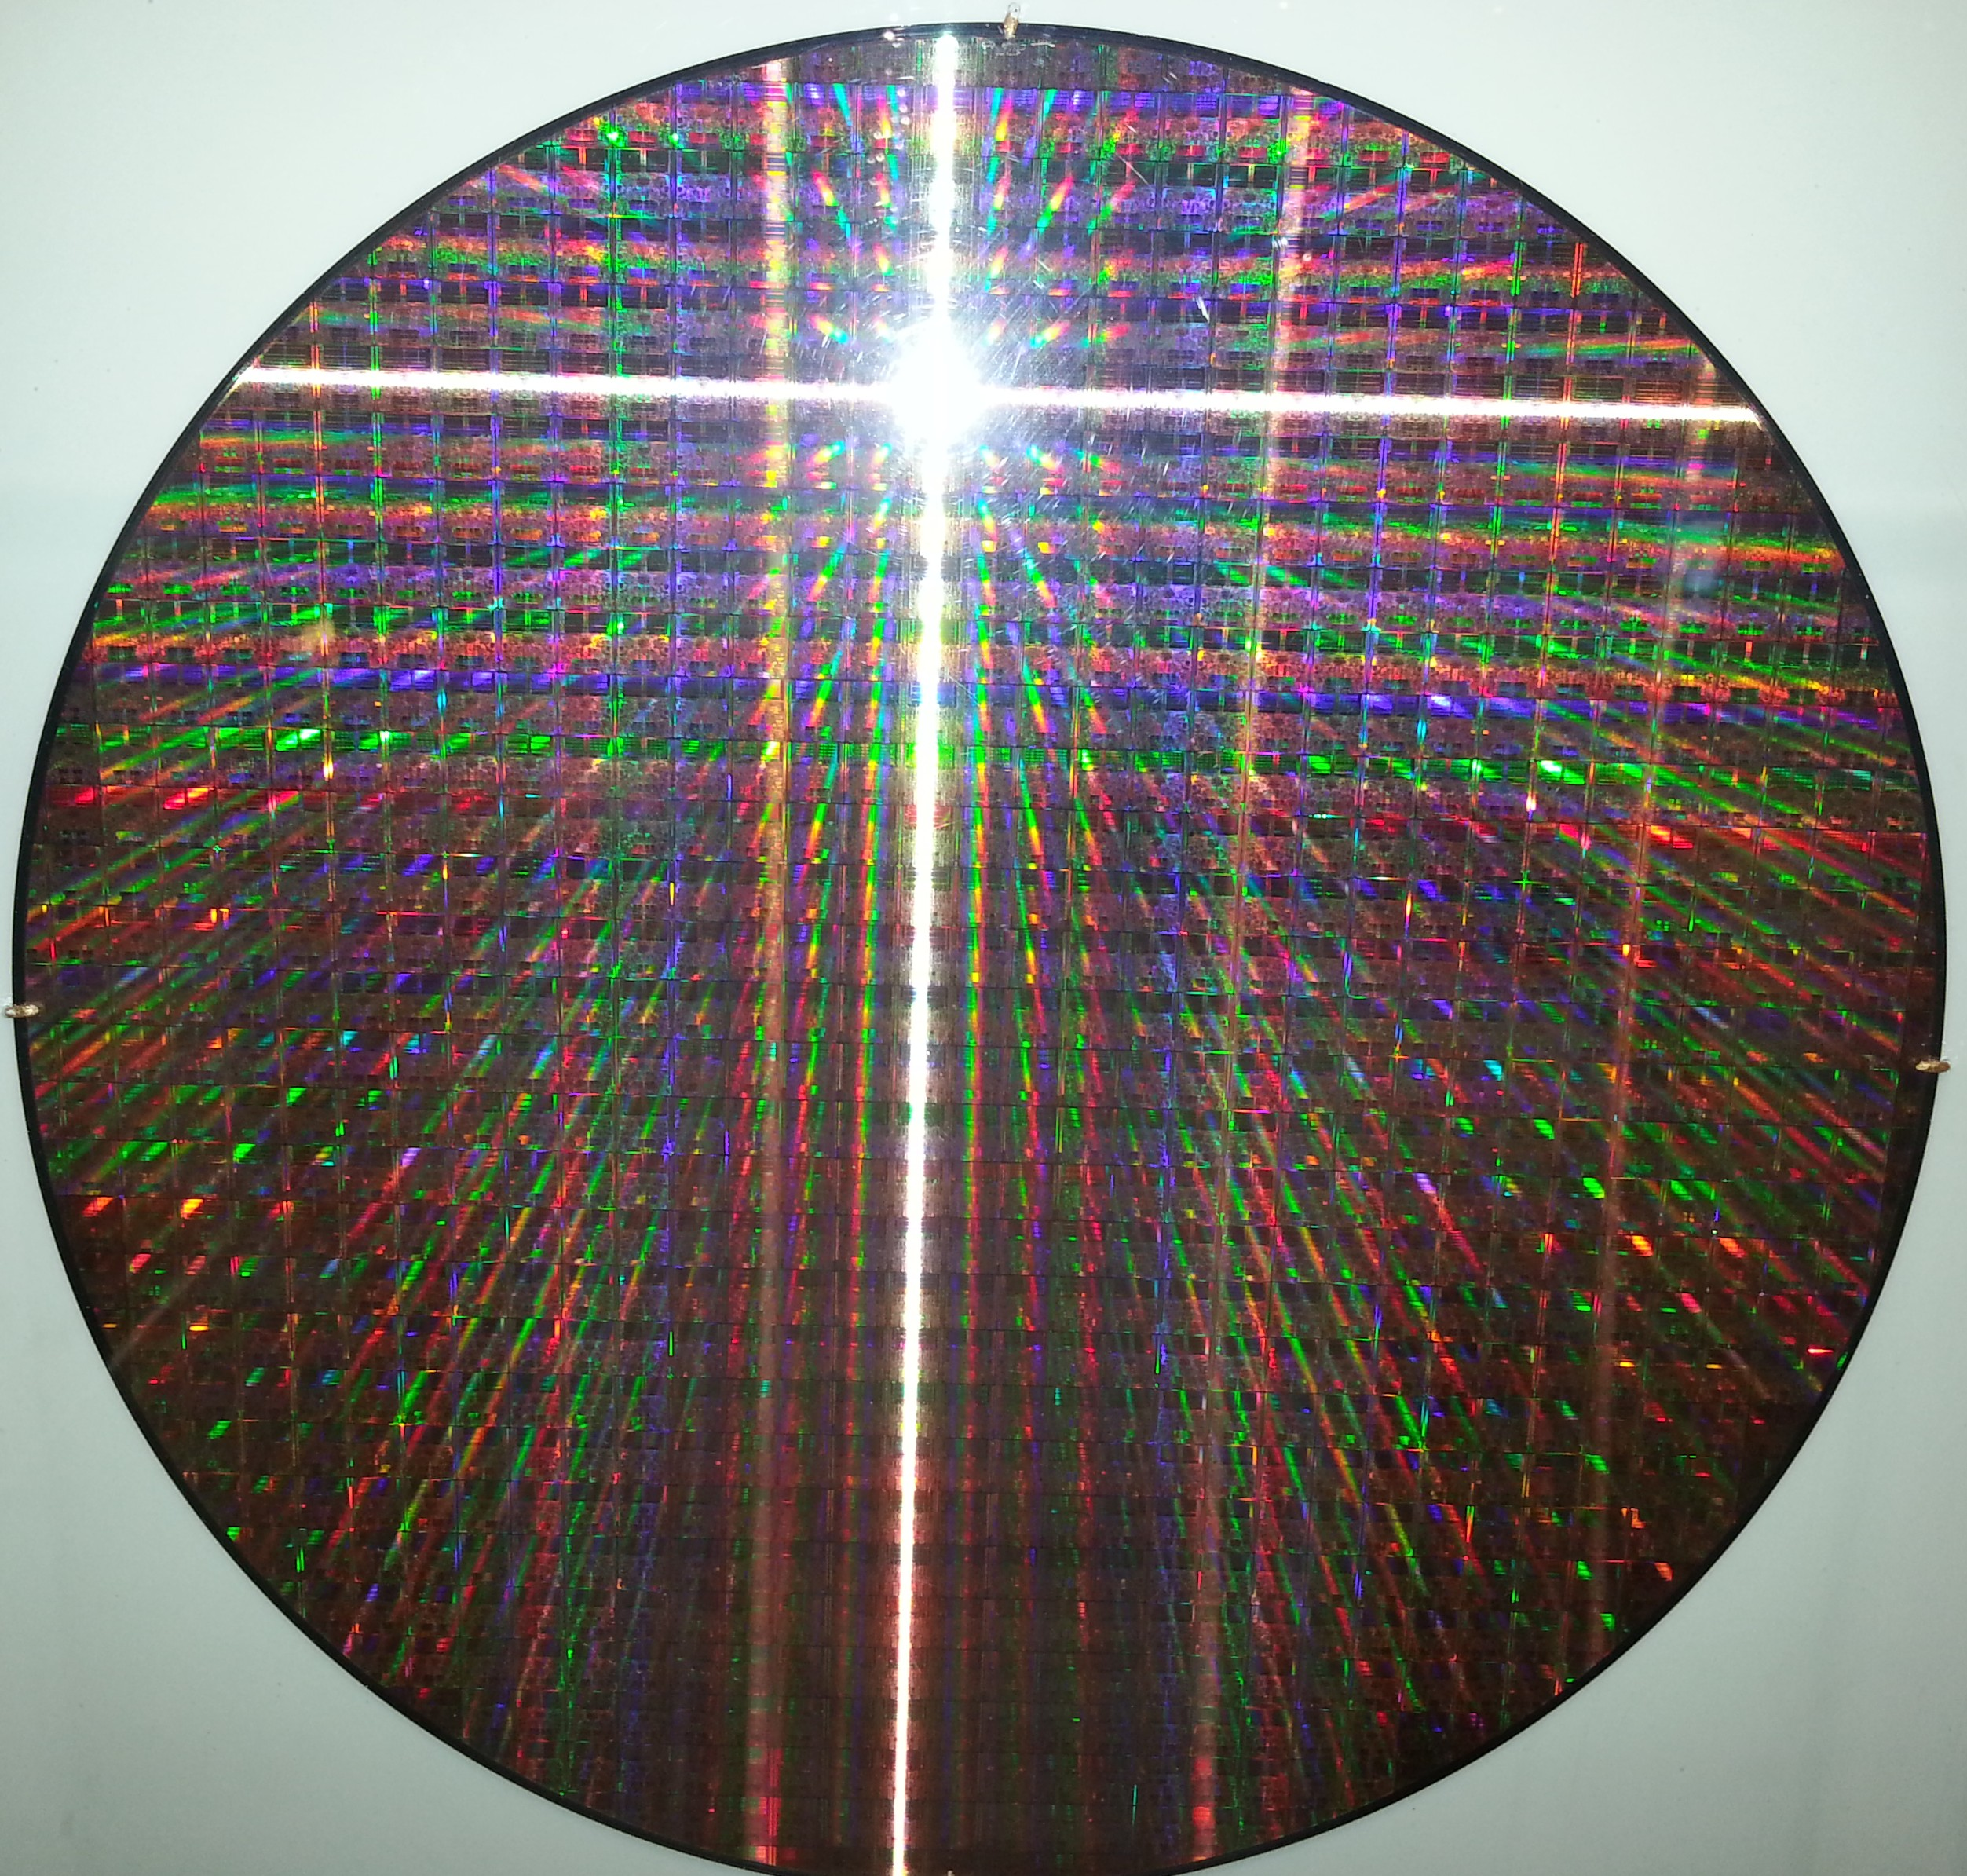 mcmaster:intel:museum:core_wafer.jpg